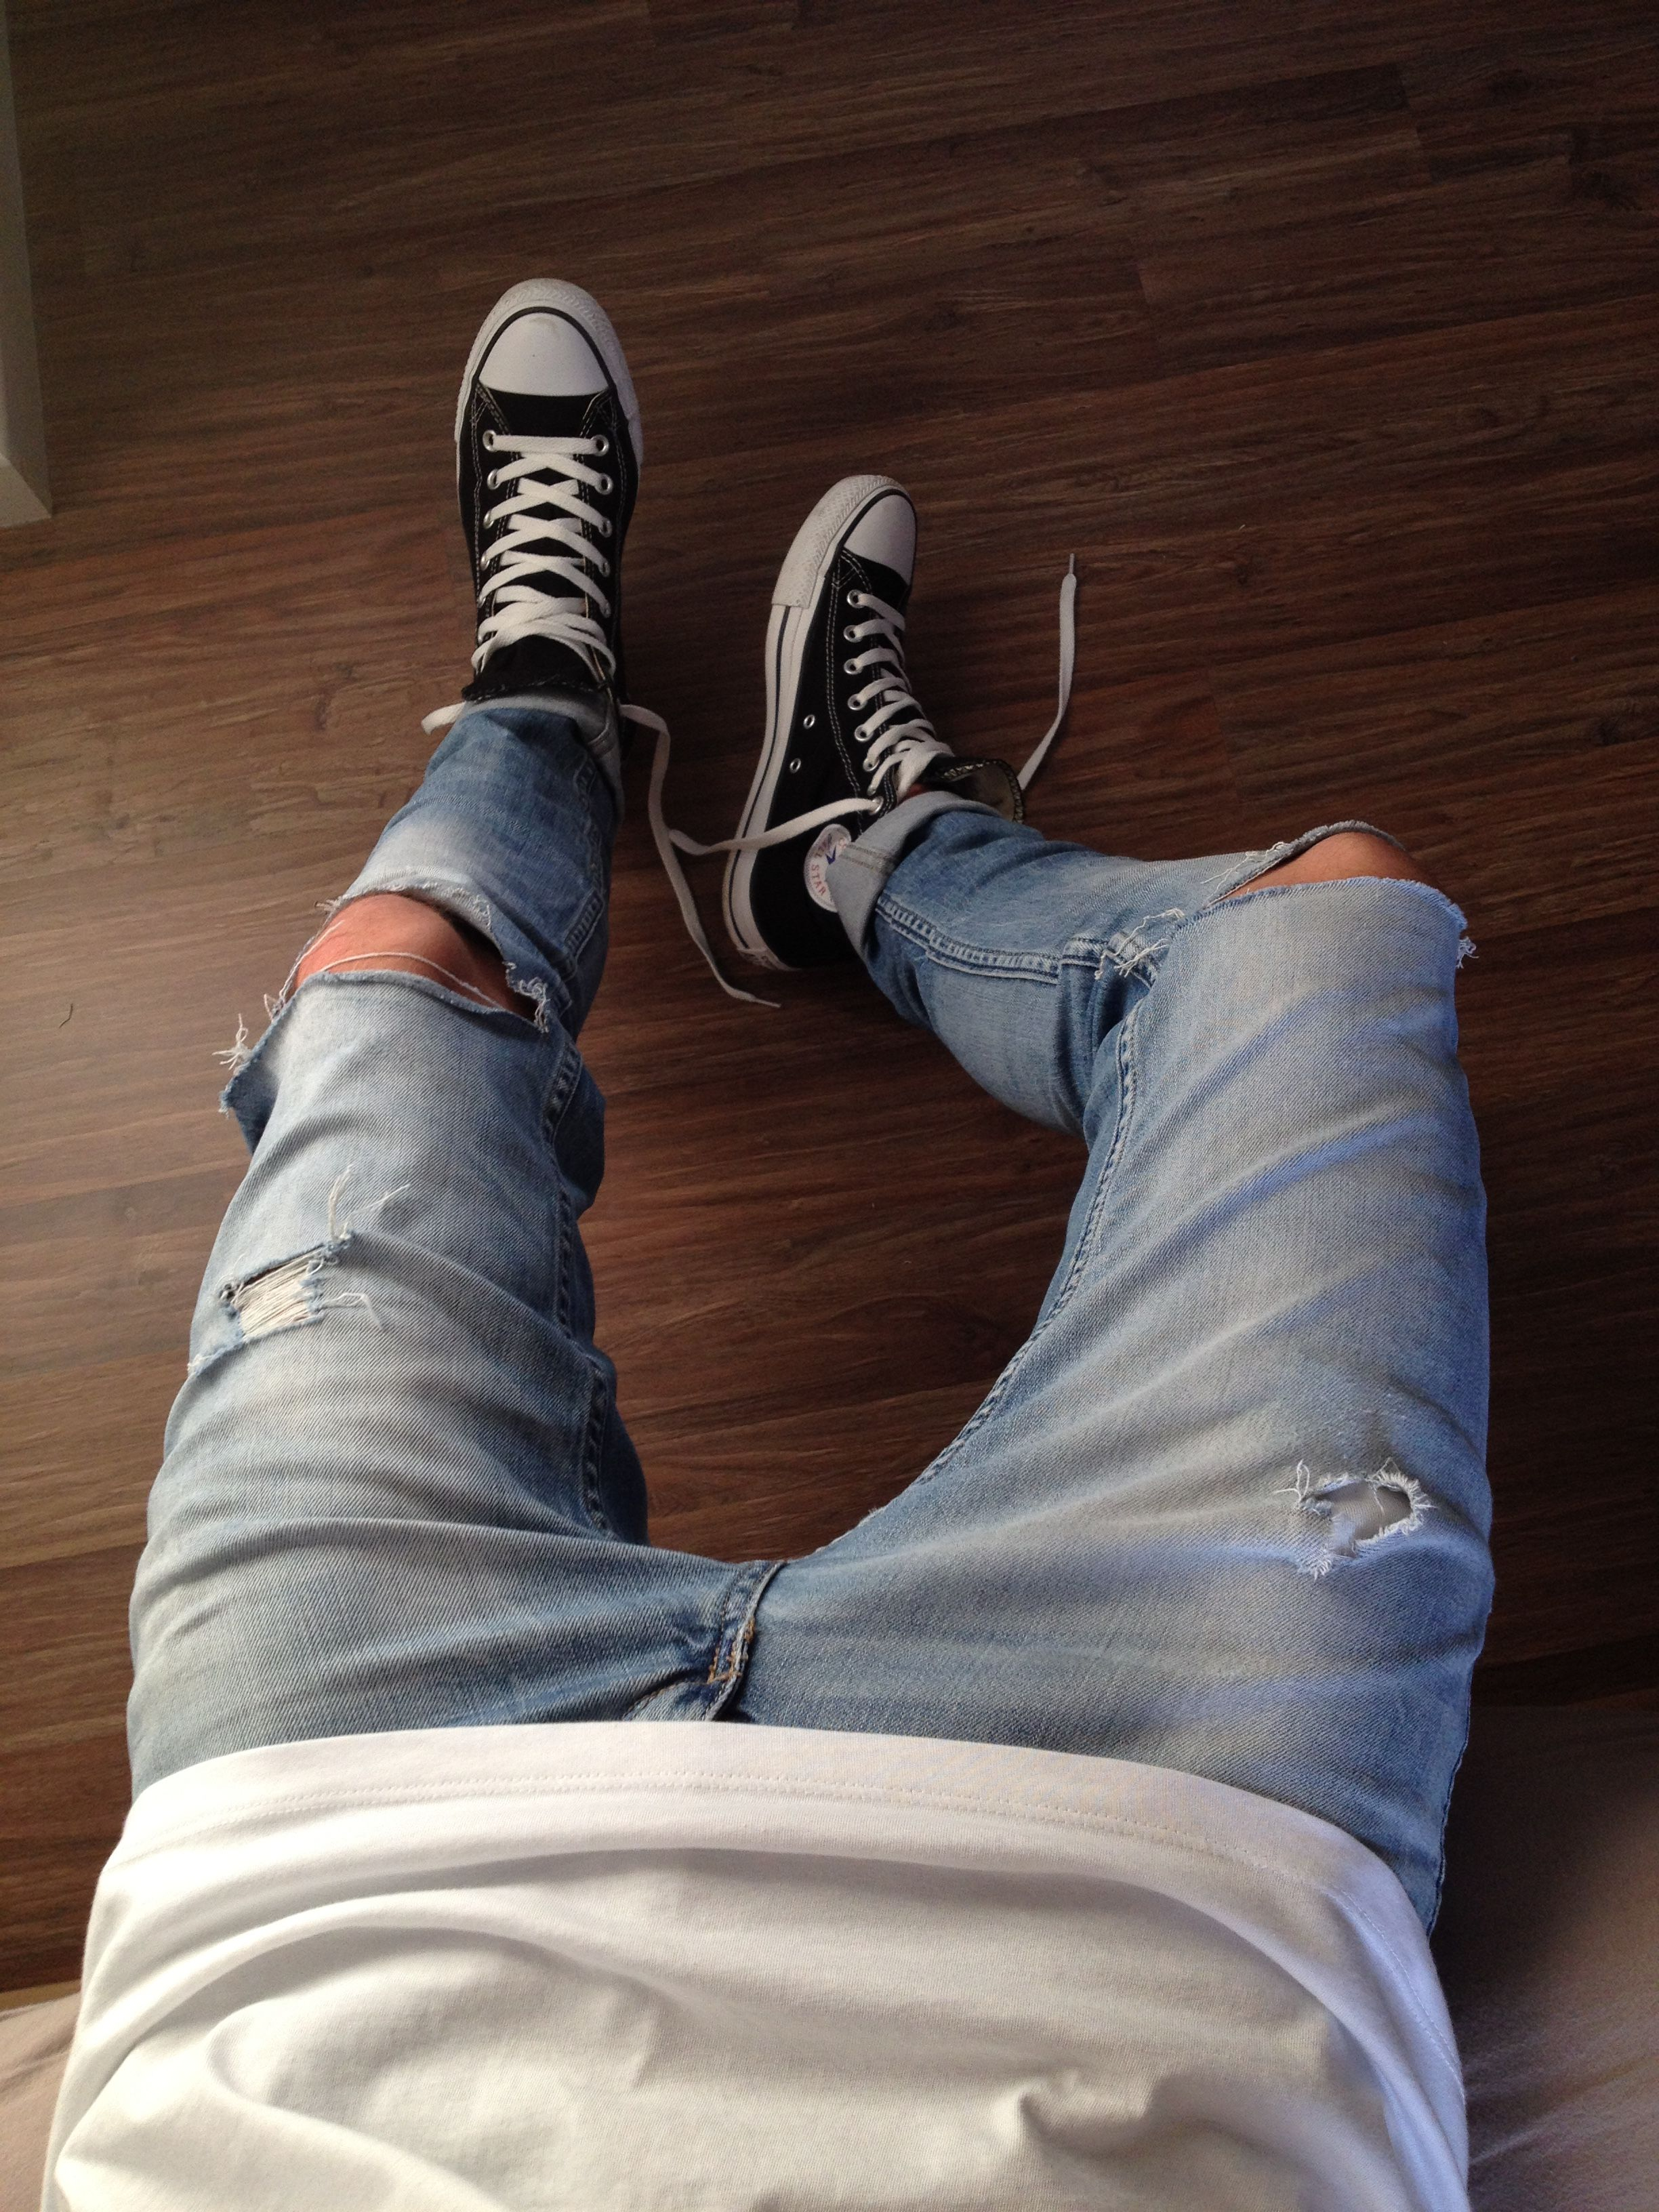 fda6eacbb911 White tee ripped jeans and chucks. - Tags  casual